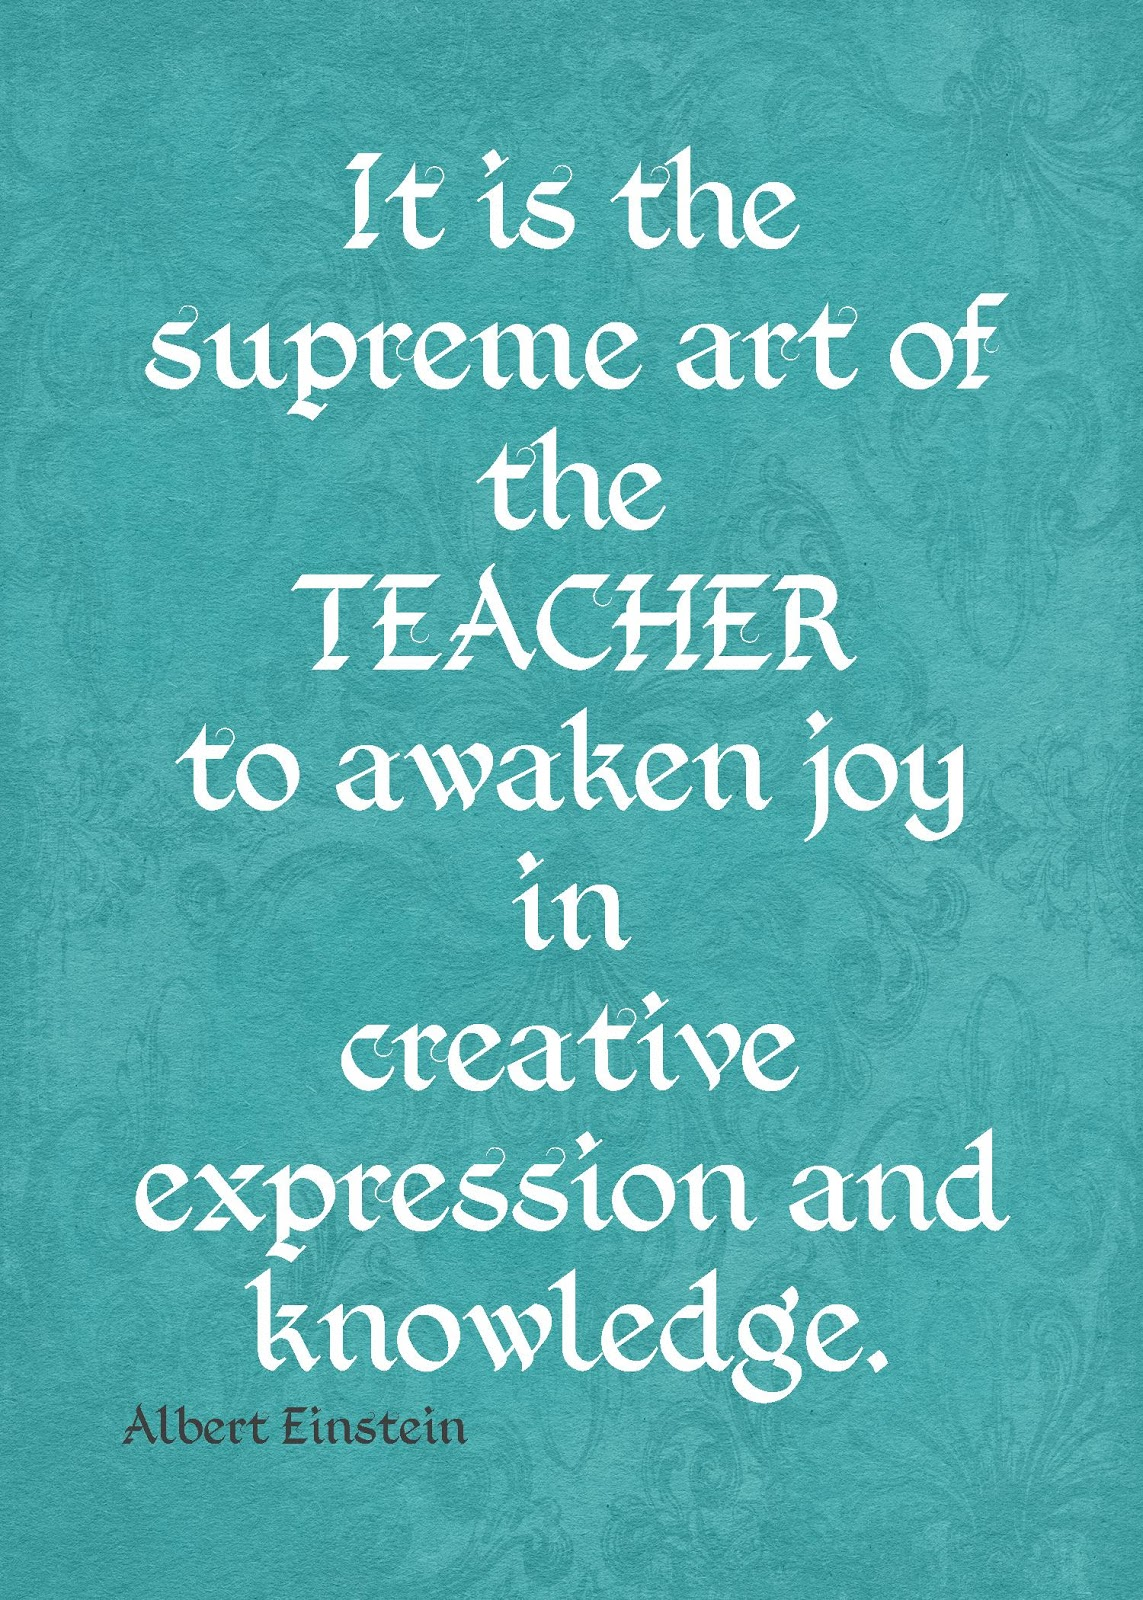 Famous teaching quotes